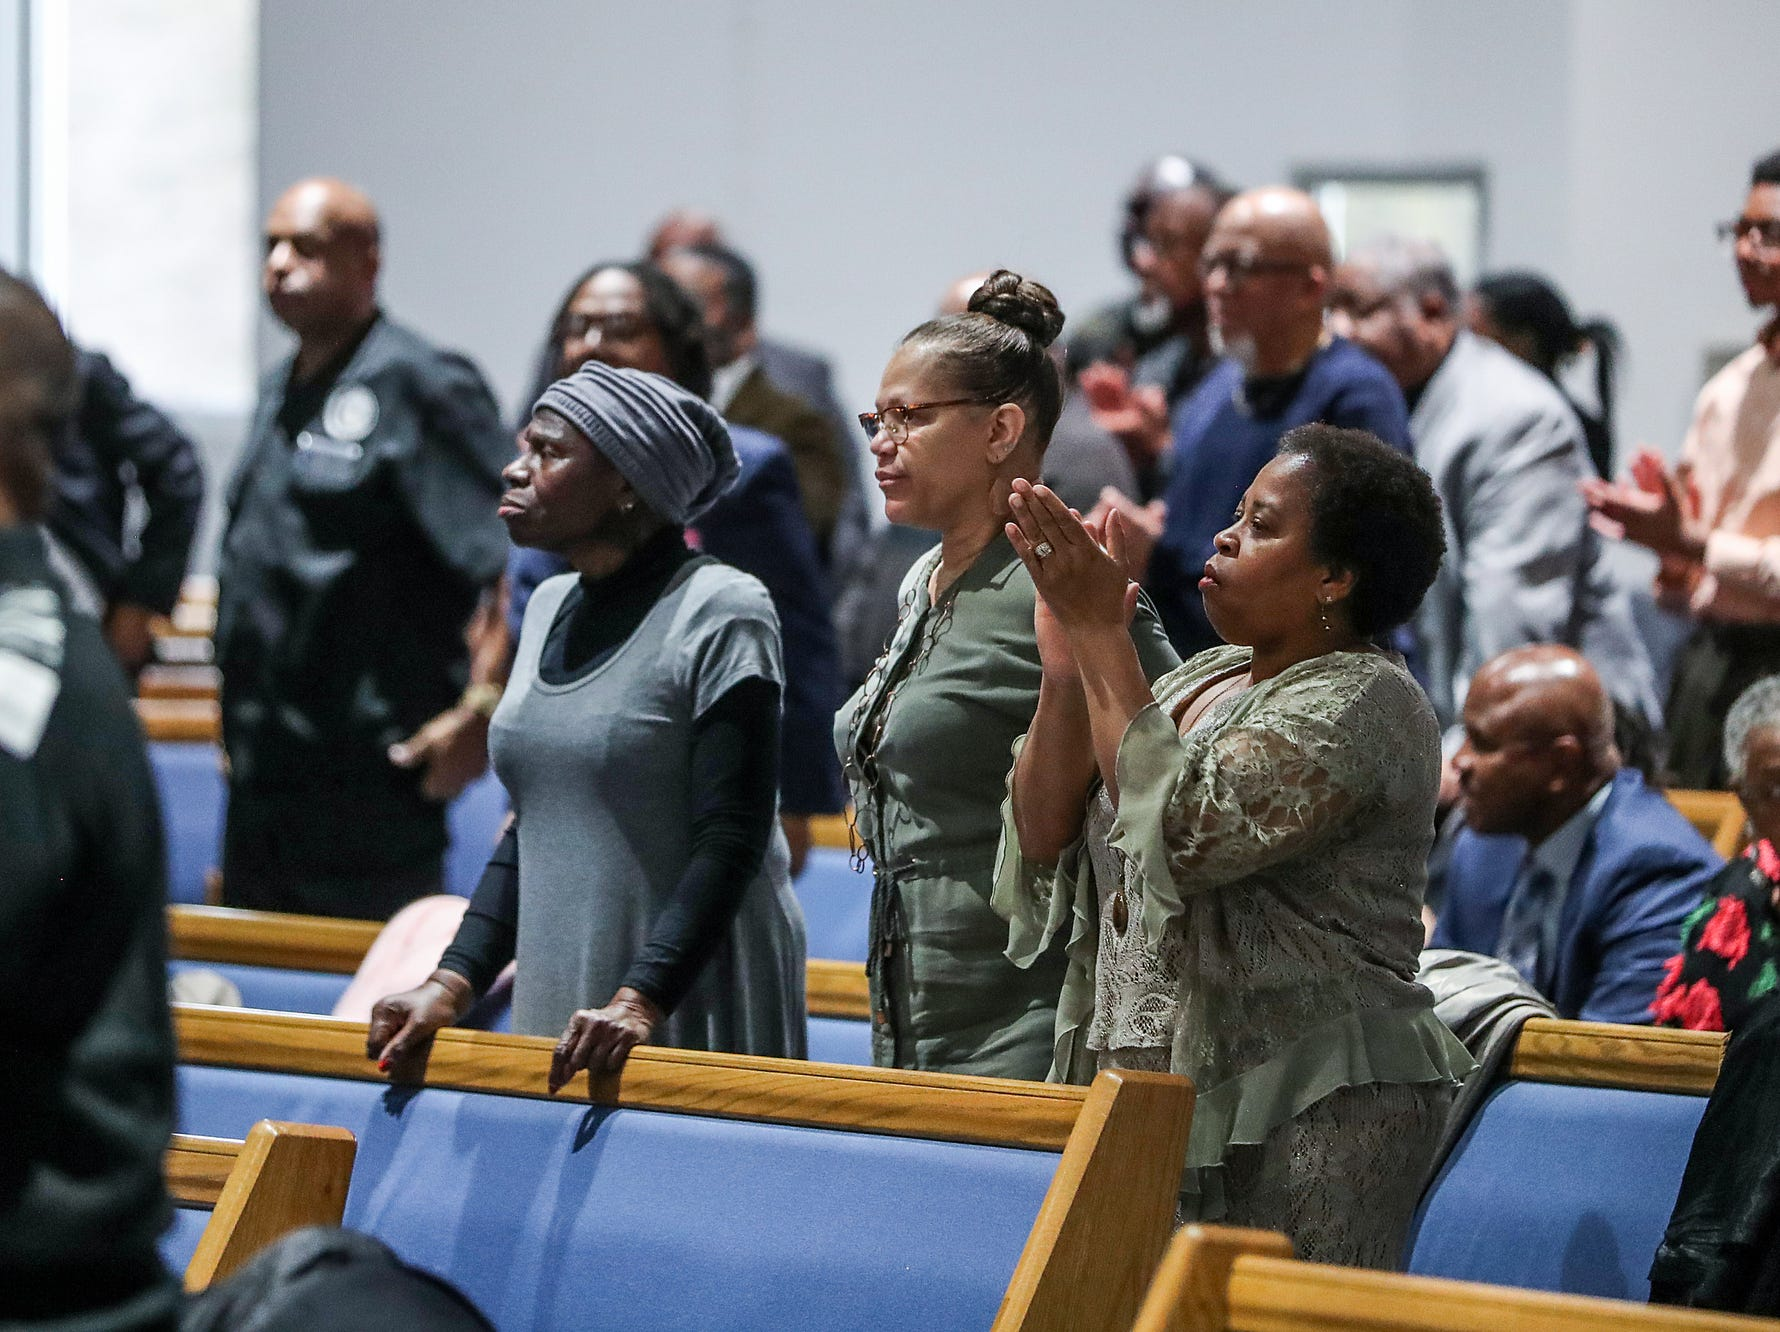 Spectators listen on during a service celebrating the anniversary of the Emancipation Proclamation and honoring local leaders, at Olivet Missionary Baptist Church in Indianapolis, Tuesday, Jan. 1, 2019.